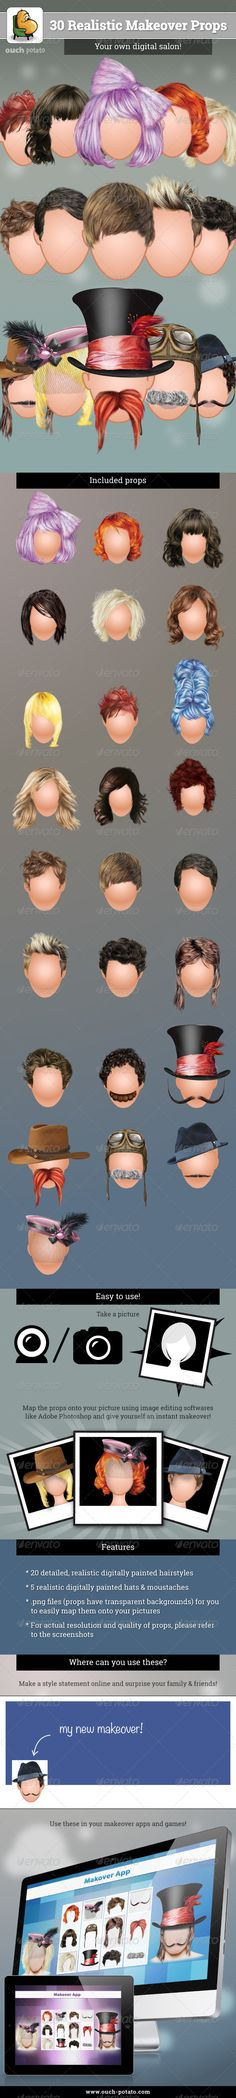 30 Realistic Makeover Props   #GraphicRiver        What does the file contain?  The main file contains 30 .png (transparent background) files consisting of 20 hairstyles (12 for women and 8 for men), 5 hats and 5 moustaches. Where can you use these?  Use this great set of props (each strand of hair and all props are manually painted digitally) to give yourself a quick makeover. They can also be used in makeover apps & games. Features   20 detailed and realistic digitally painted hairstyles…